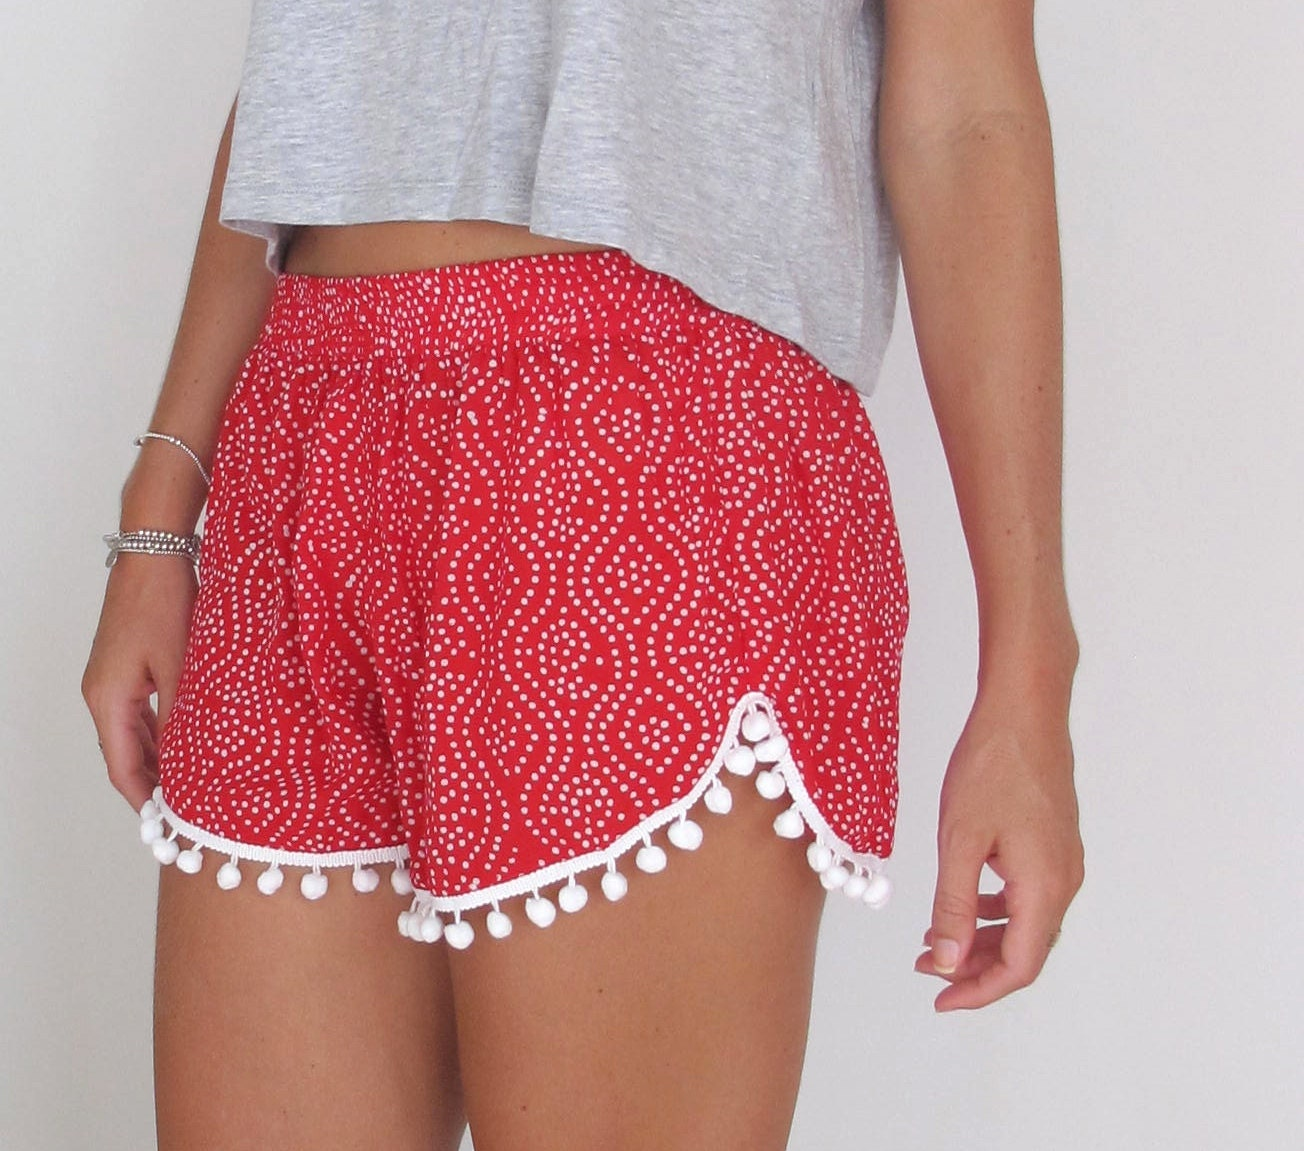 Christmas Pom Pom Shorts Red and White Polkadot Print